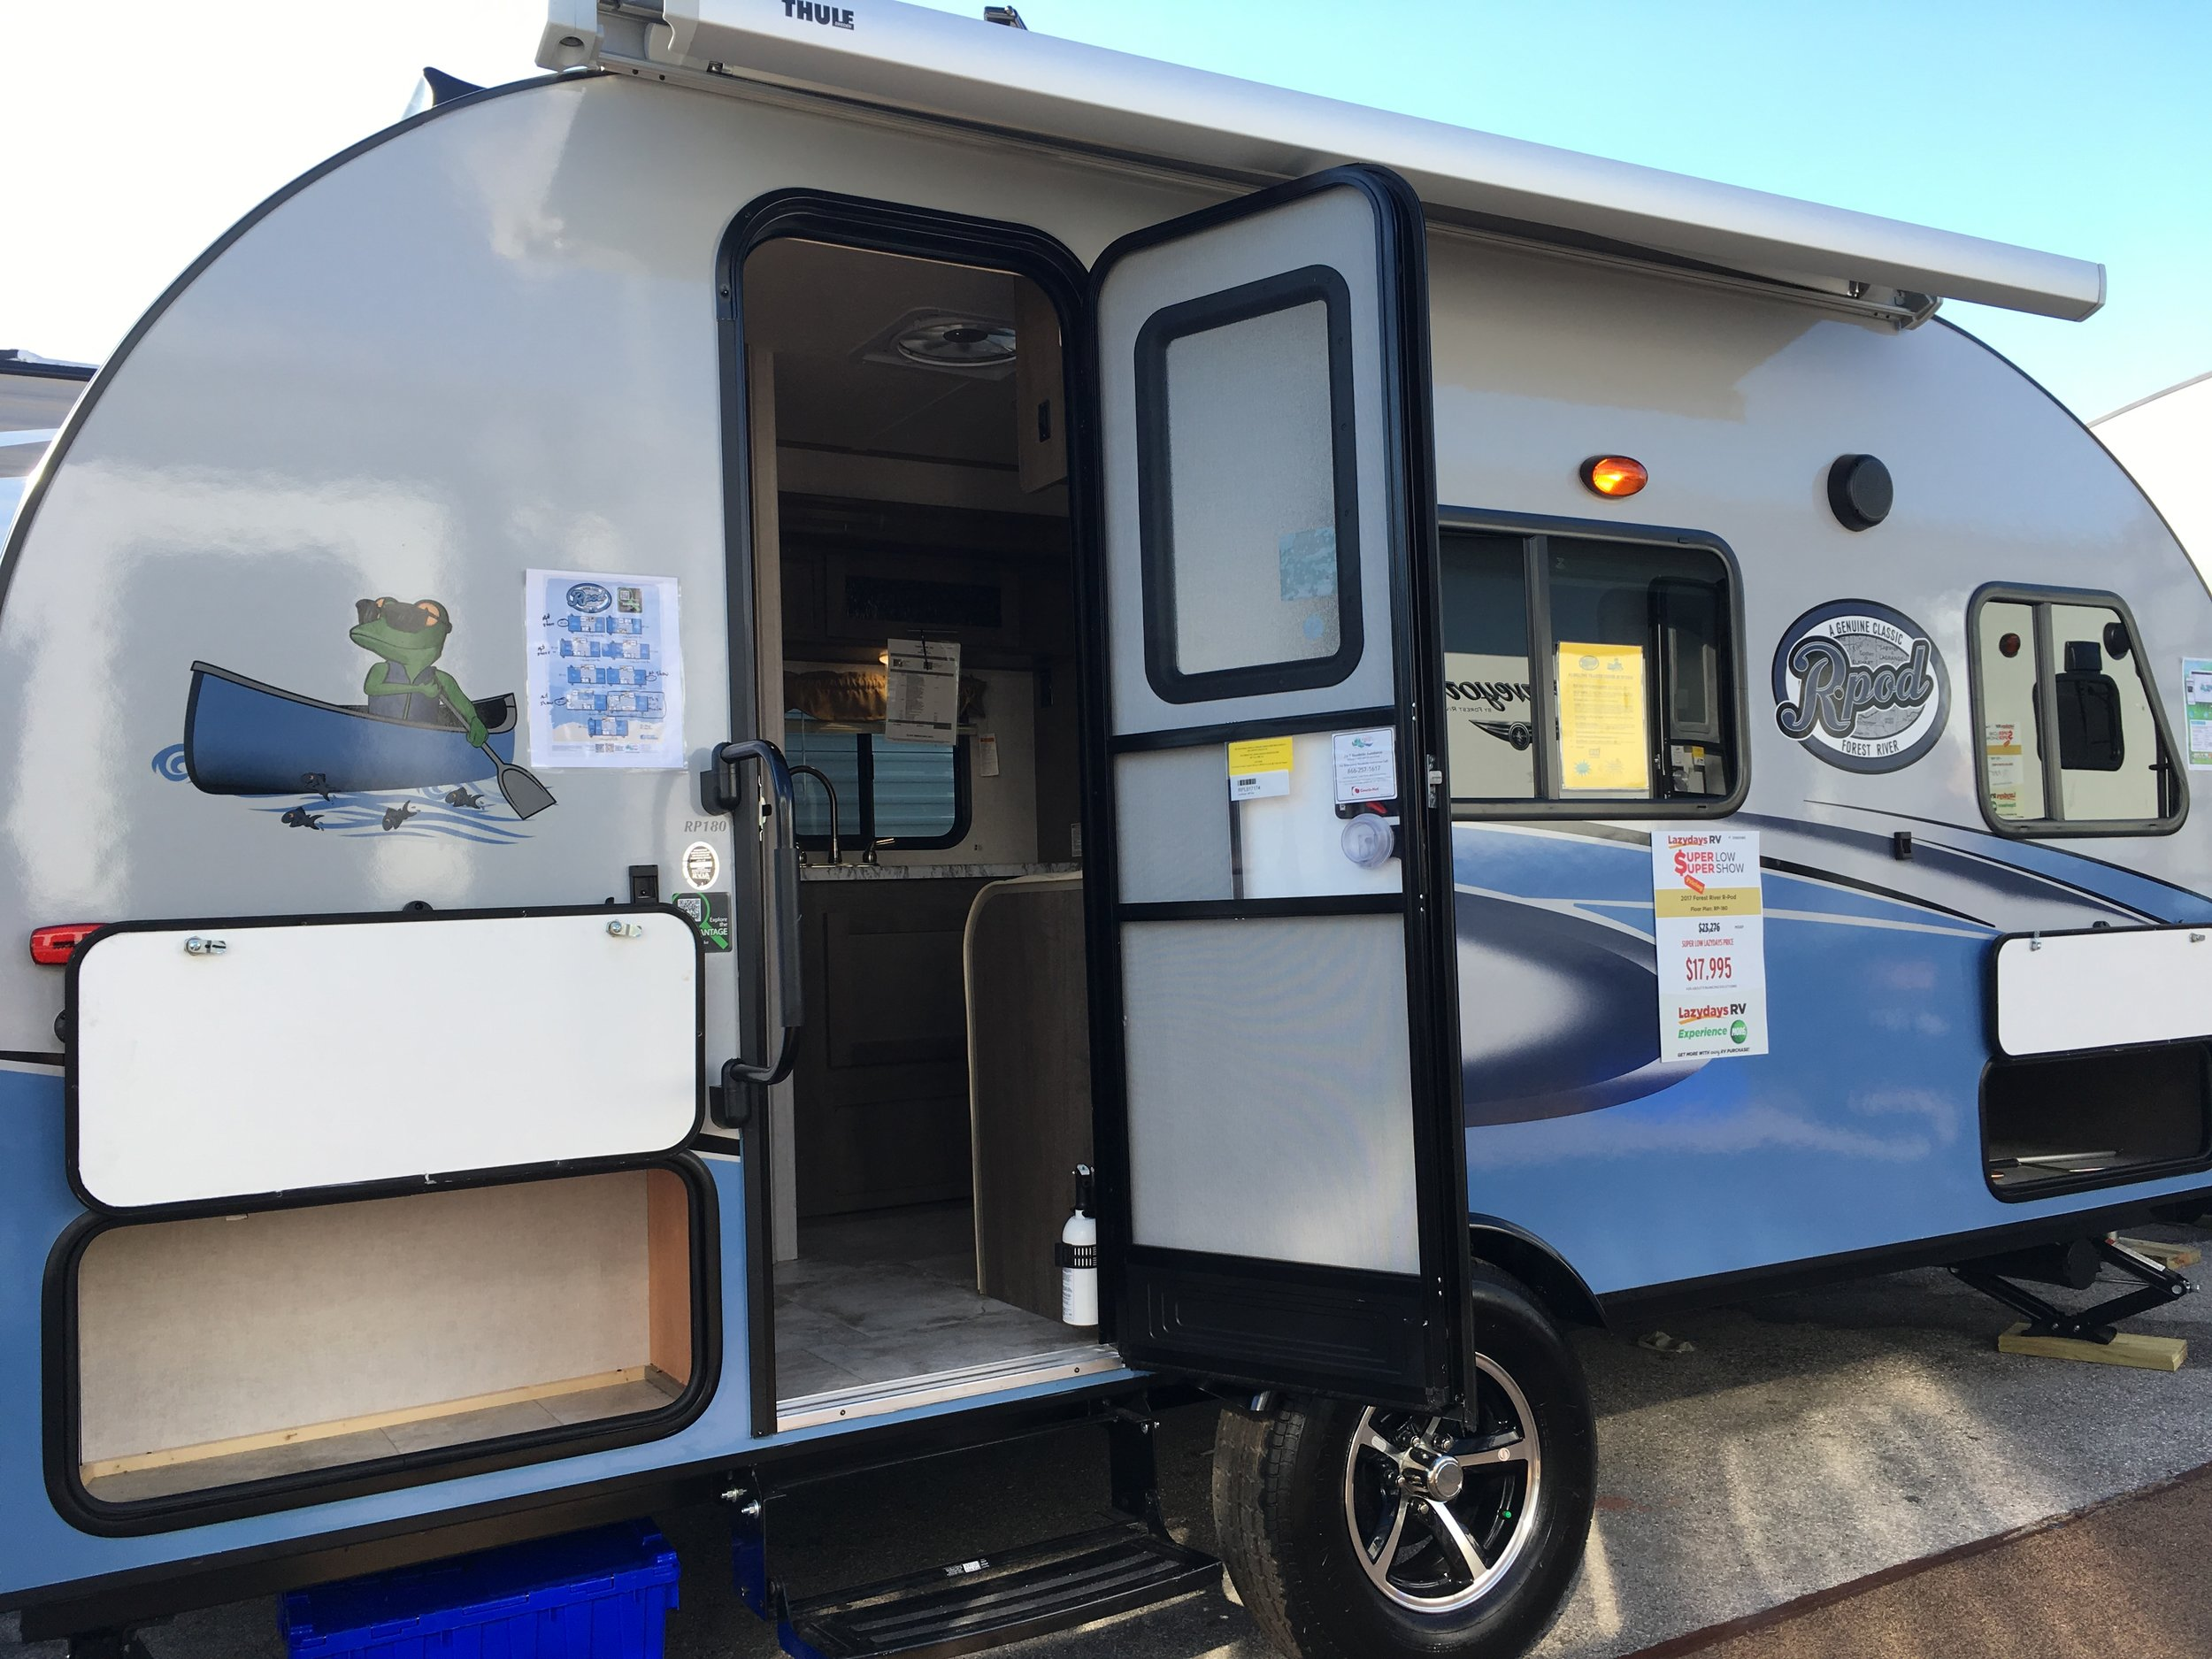 Small Travel Trailers like this R-Pod make Travel Trailers an affordable and flexible option.